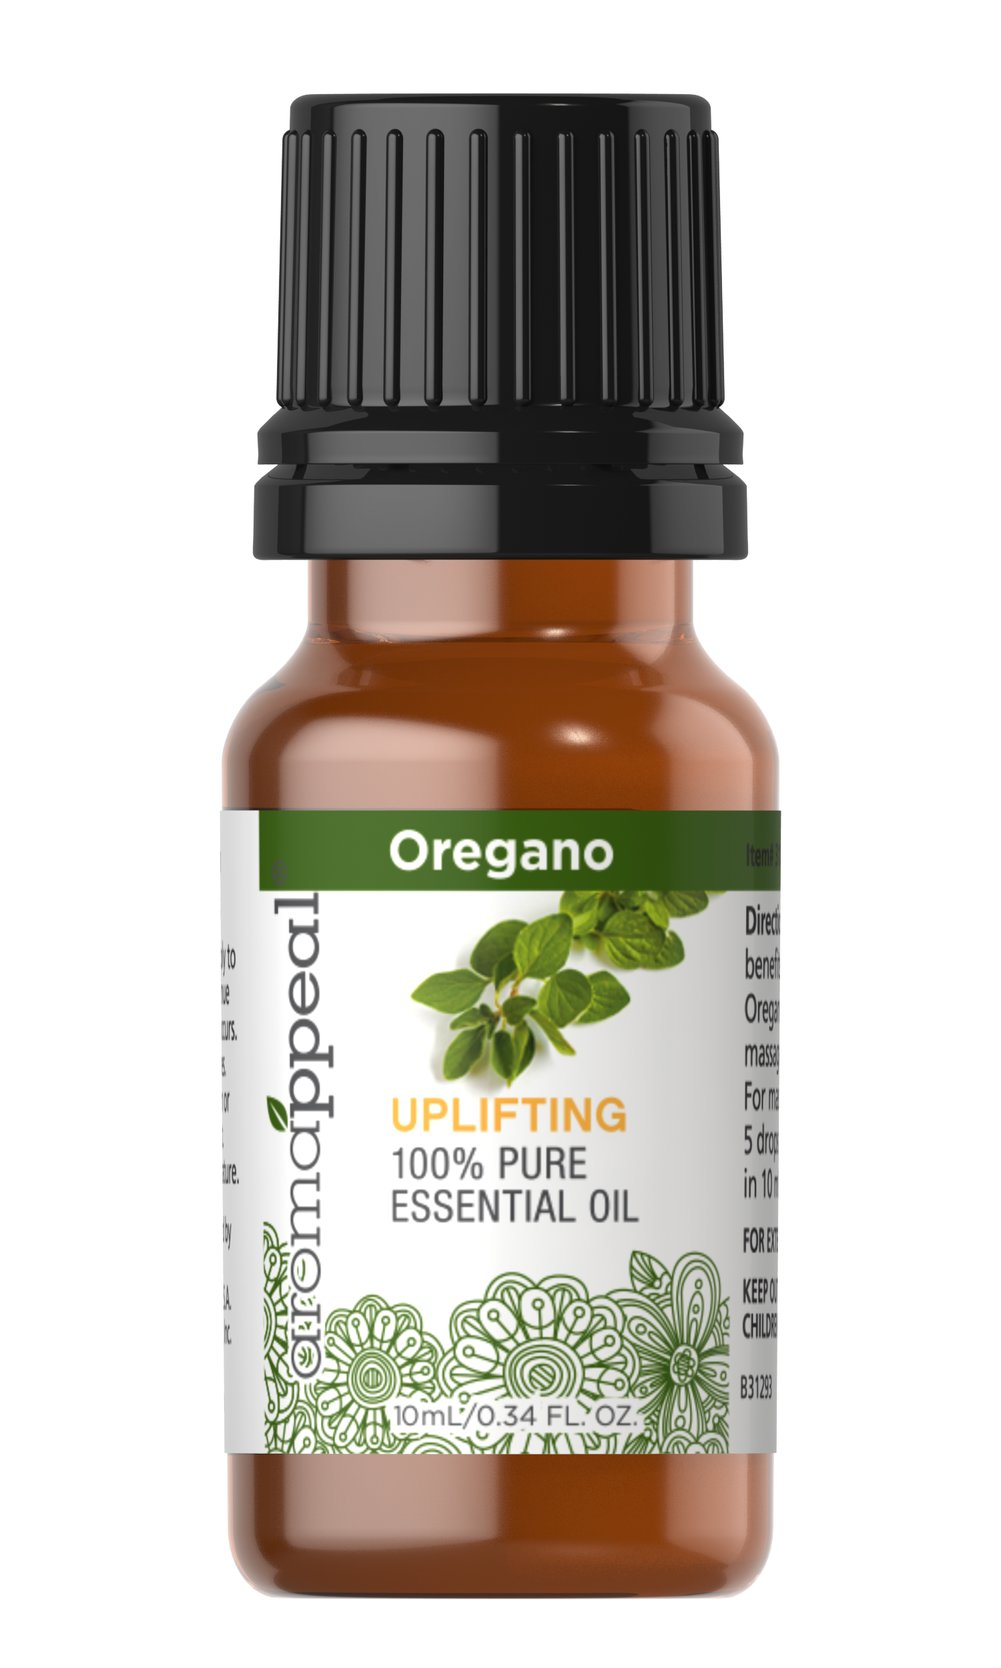 "Oregano 100% Pure Essential Oil <p>Delight your senses with the total body purification of Oregano Oil. Punctuated by its strong, spicy, herbal aroma, Oregano is a cleansing, invigorating oil that can leave you feeling totally revitalized. </p><p><span class=""bold-pink"">Traditional Uses: </span>Cleansing, purifying, and revitalizing.<span class=""bold-pink""></span></p><p><span class=""bold-pink"">History: <"